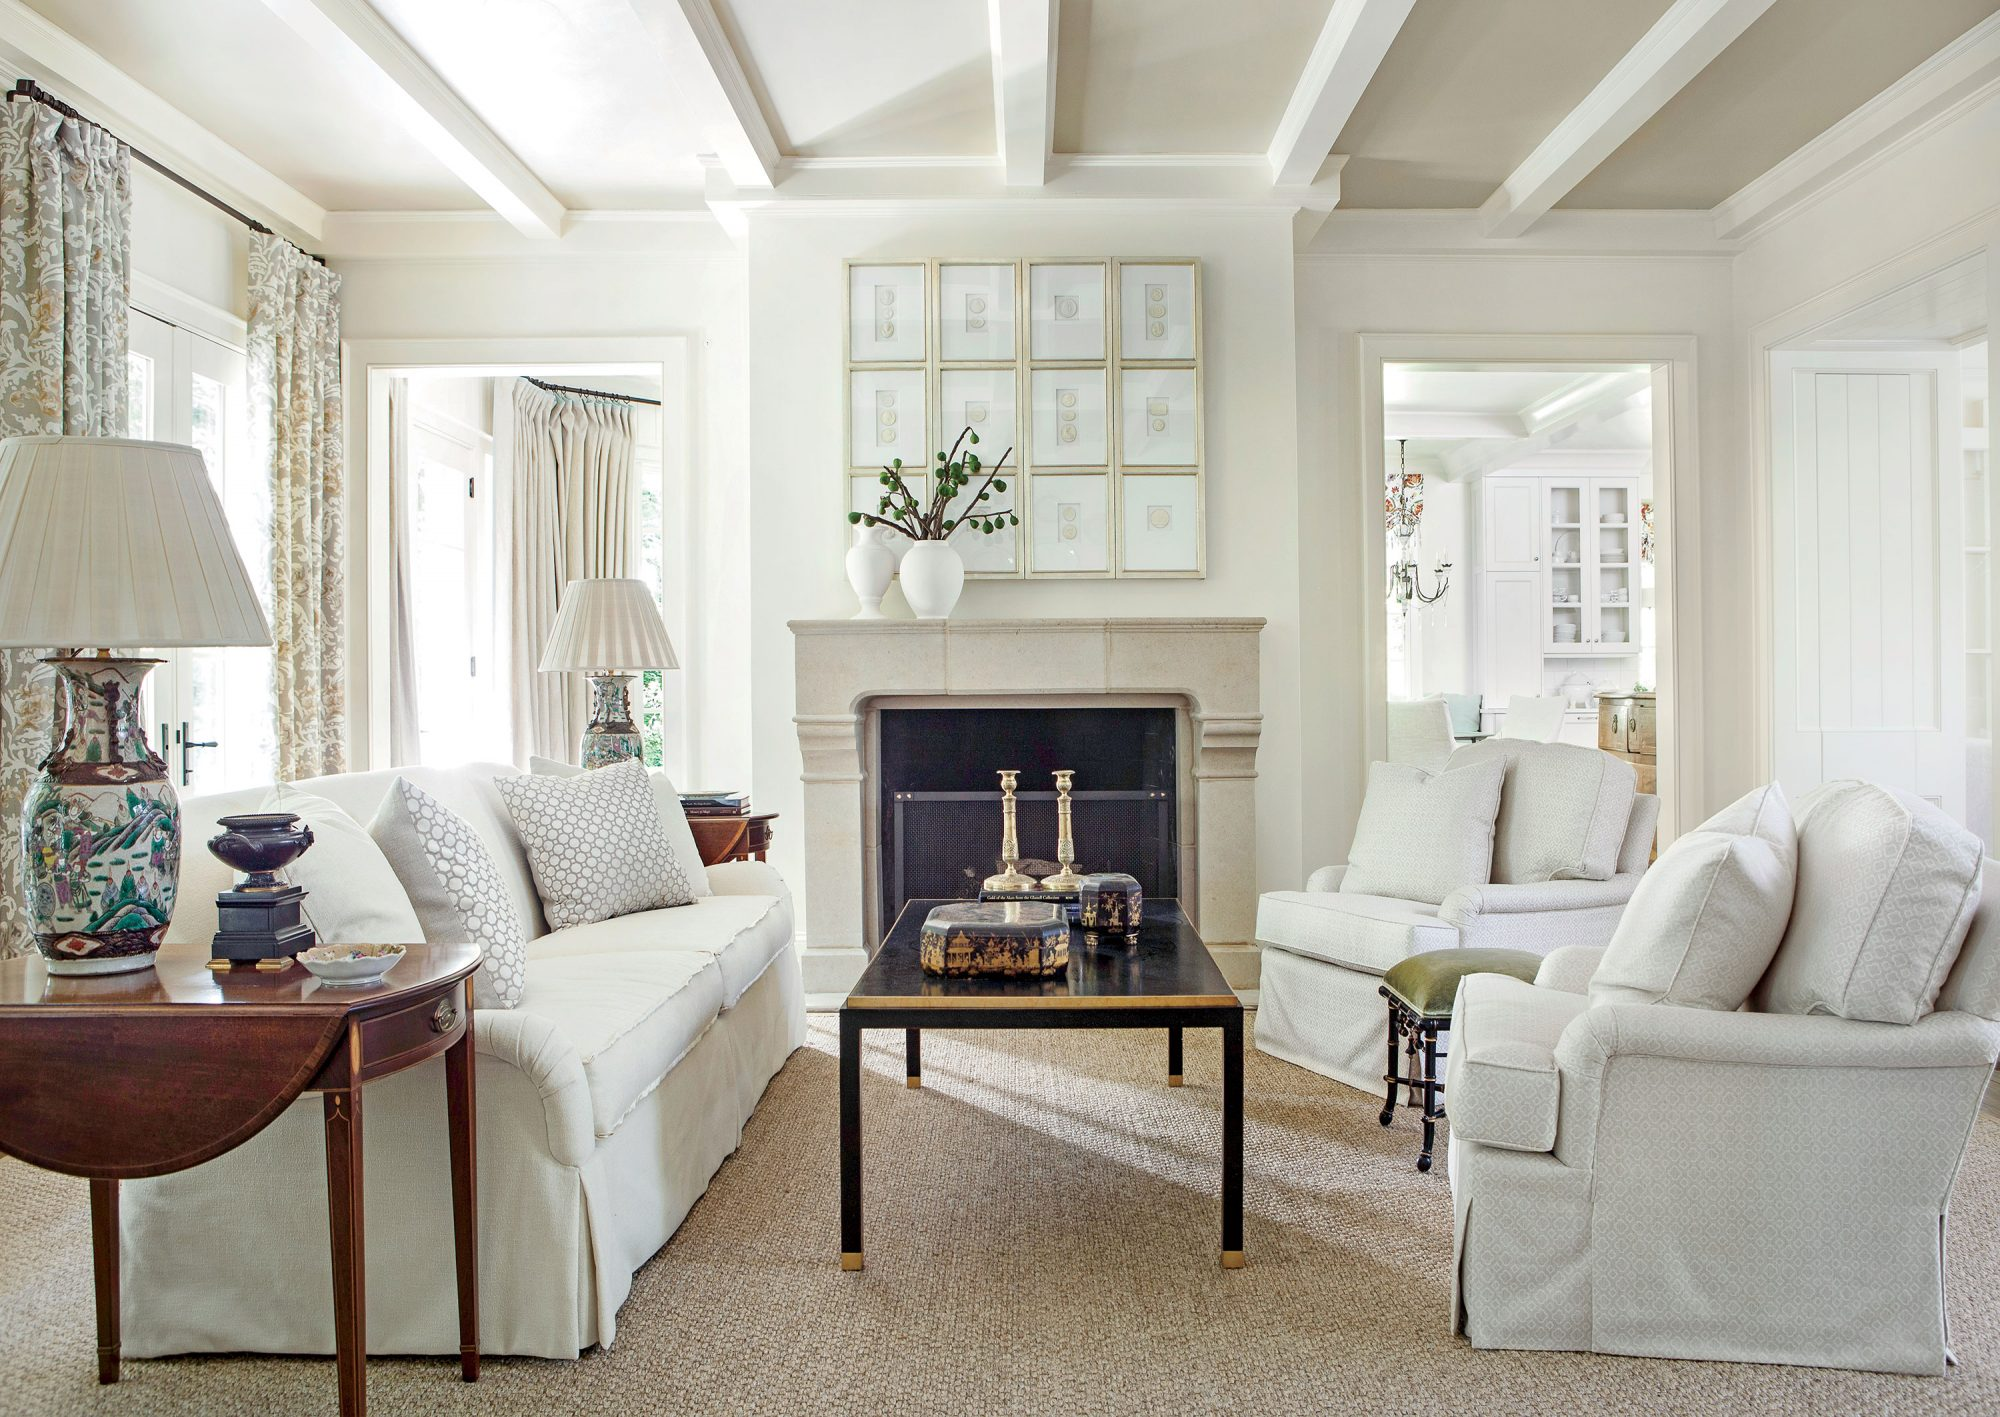 14 Warm White Paint Colors To Cozy Up Your Space